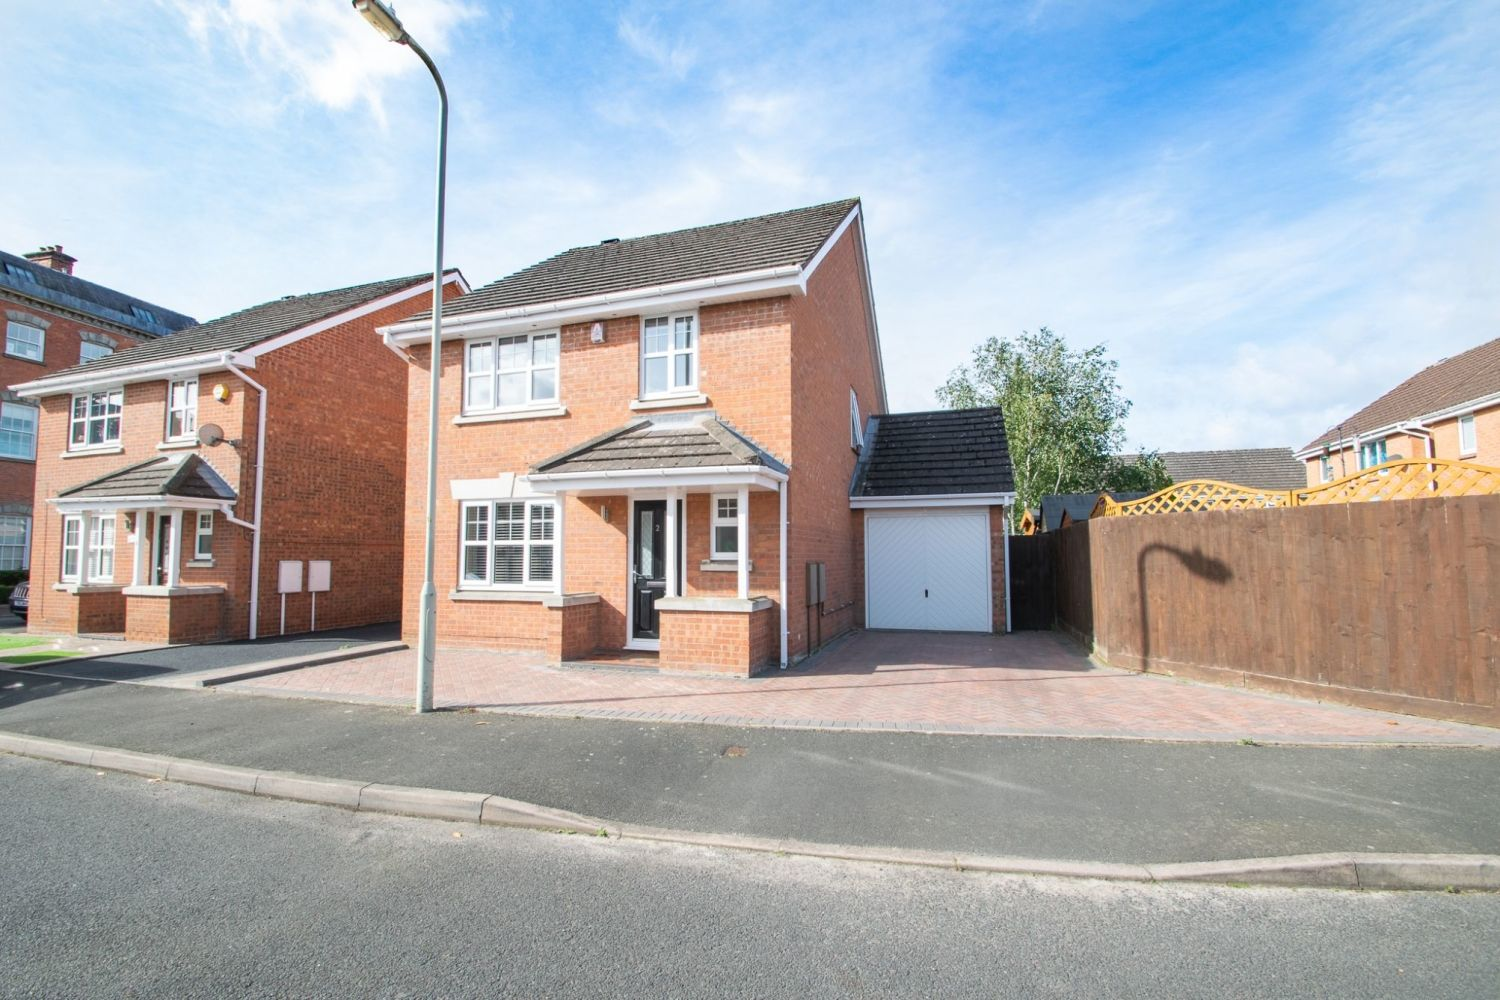 3 bed detached for sale in Batchelor Close, Amblecote  - Property Image 1